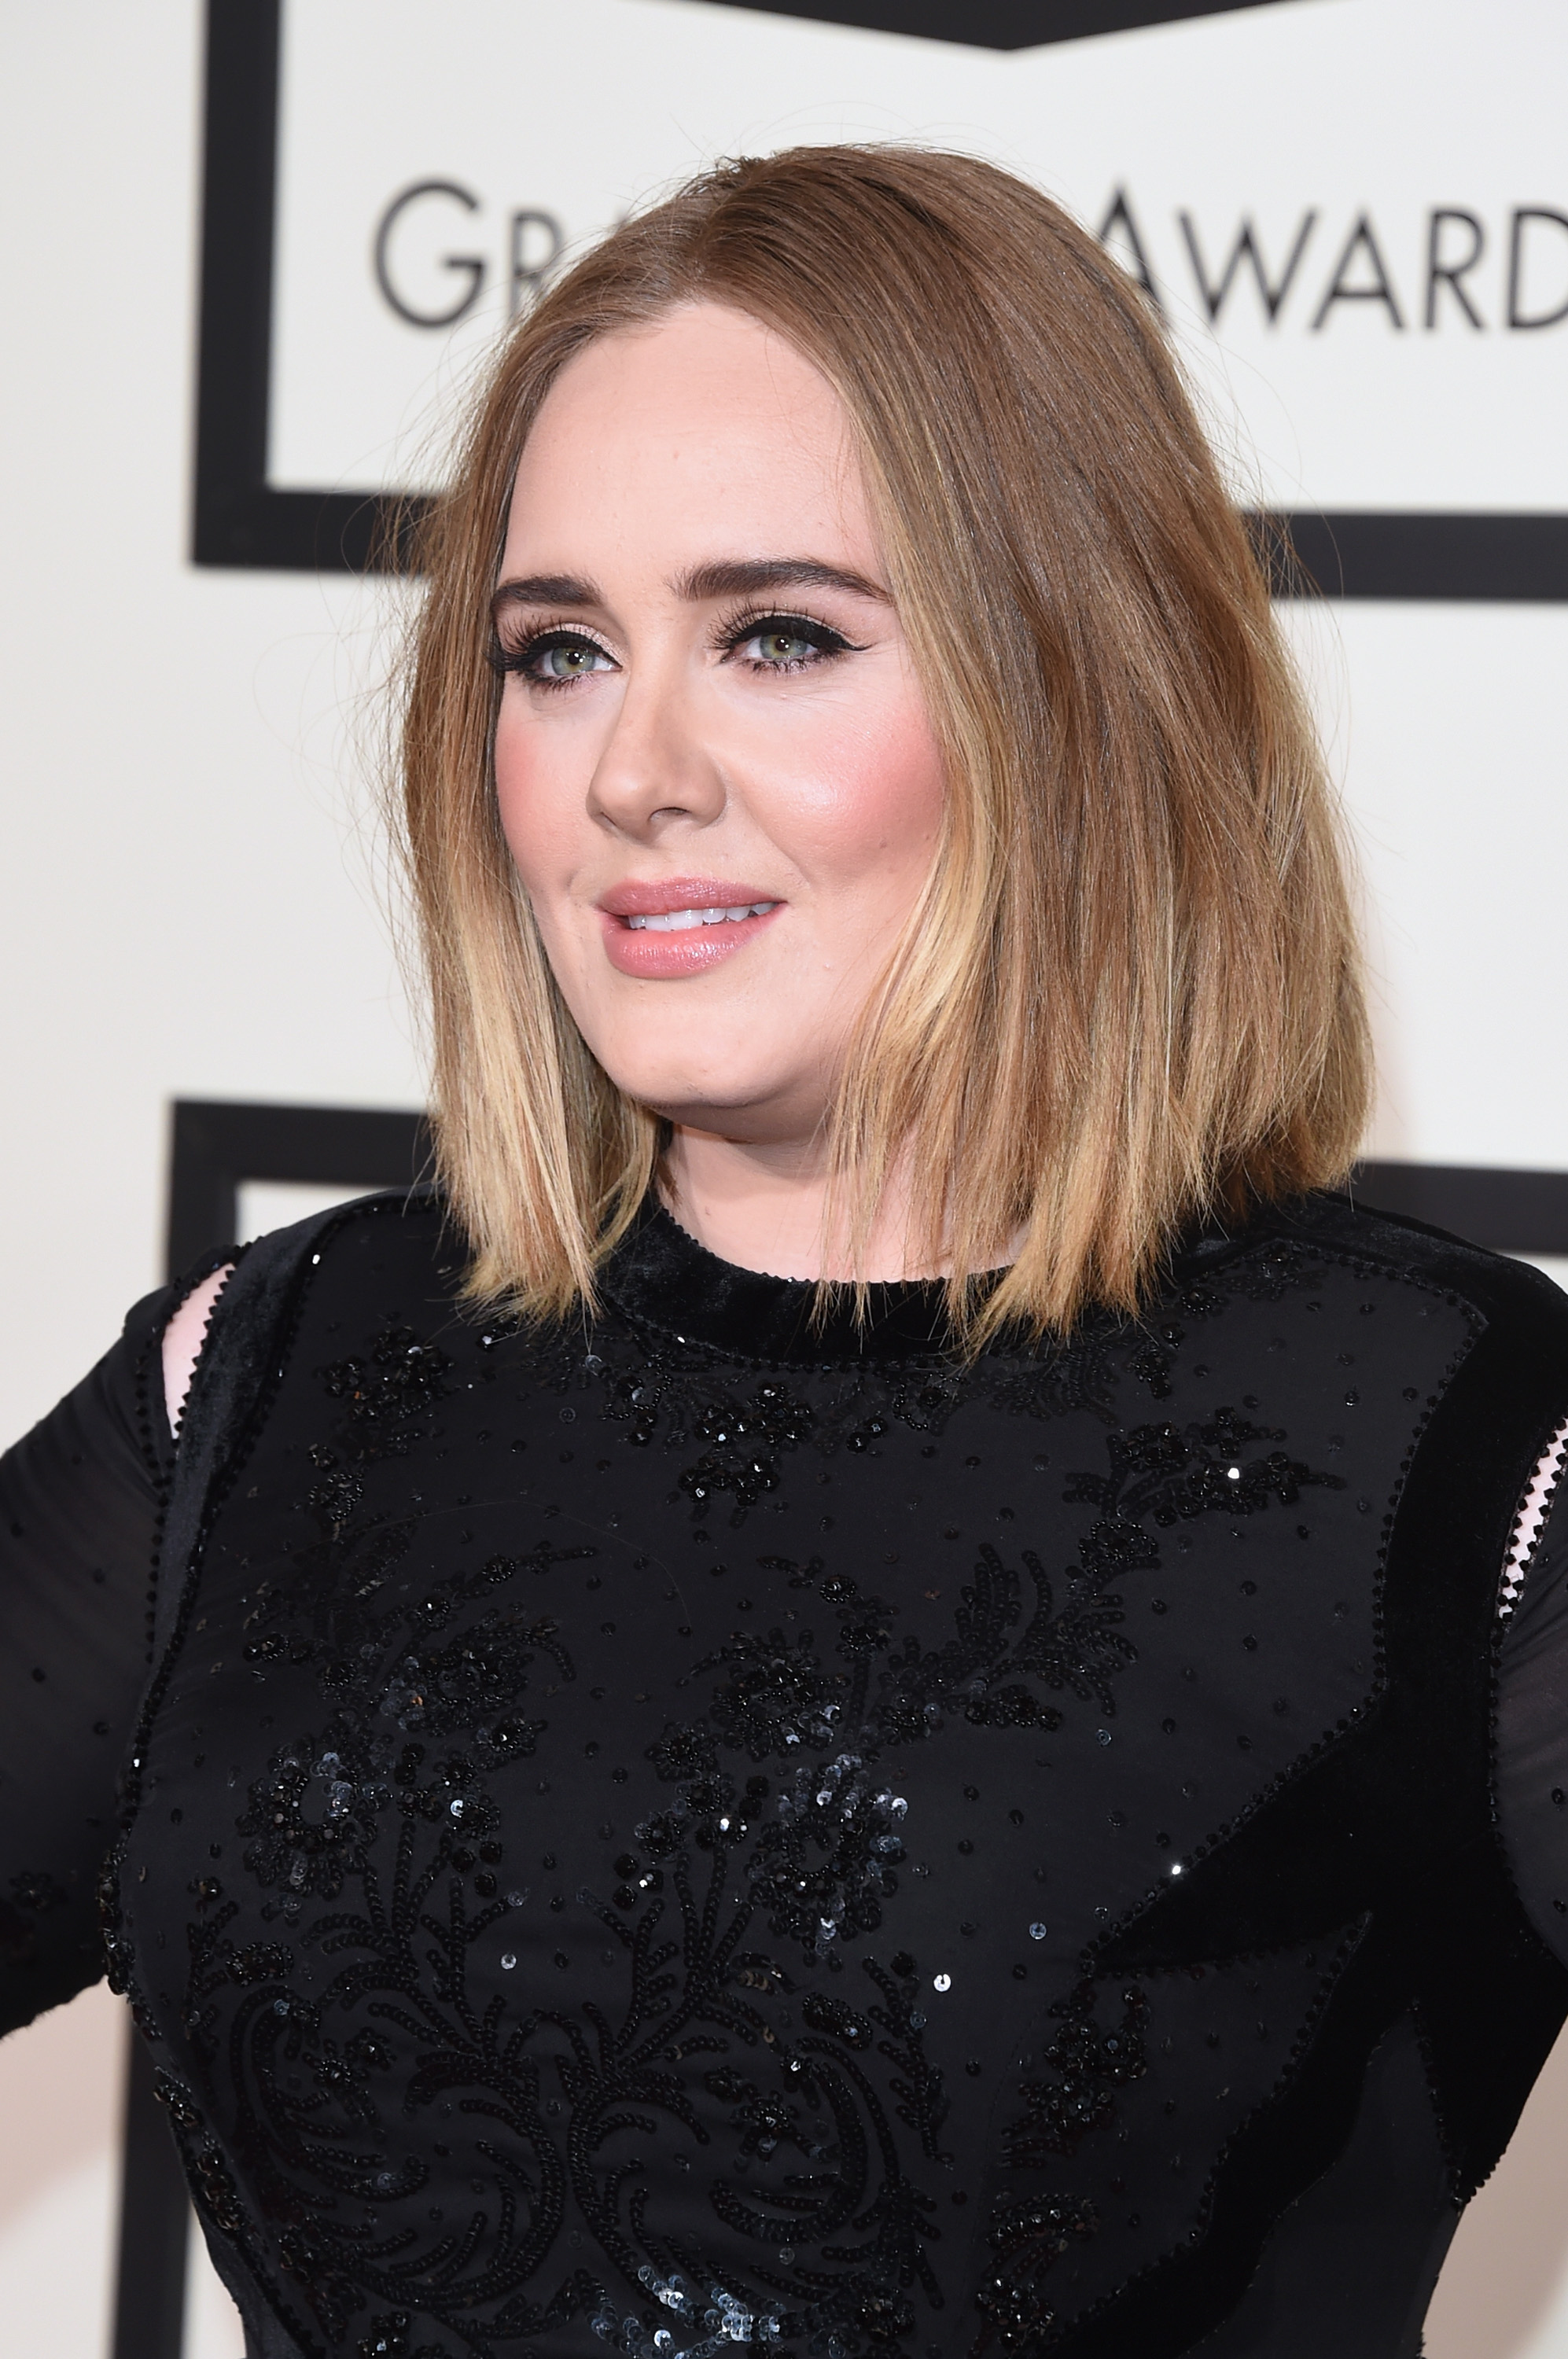 Adele Has New Ombre Hair At 2016 Grammys Remains Flawless